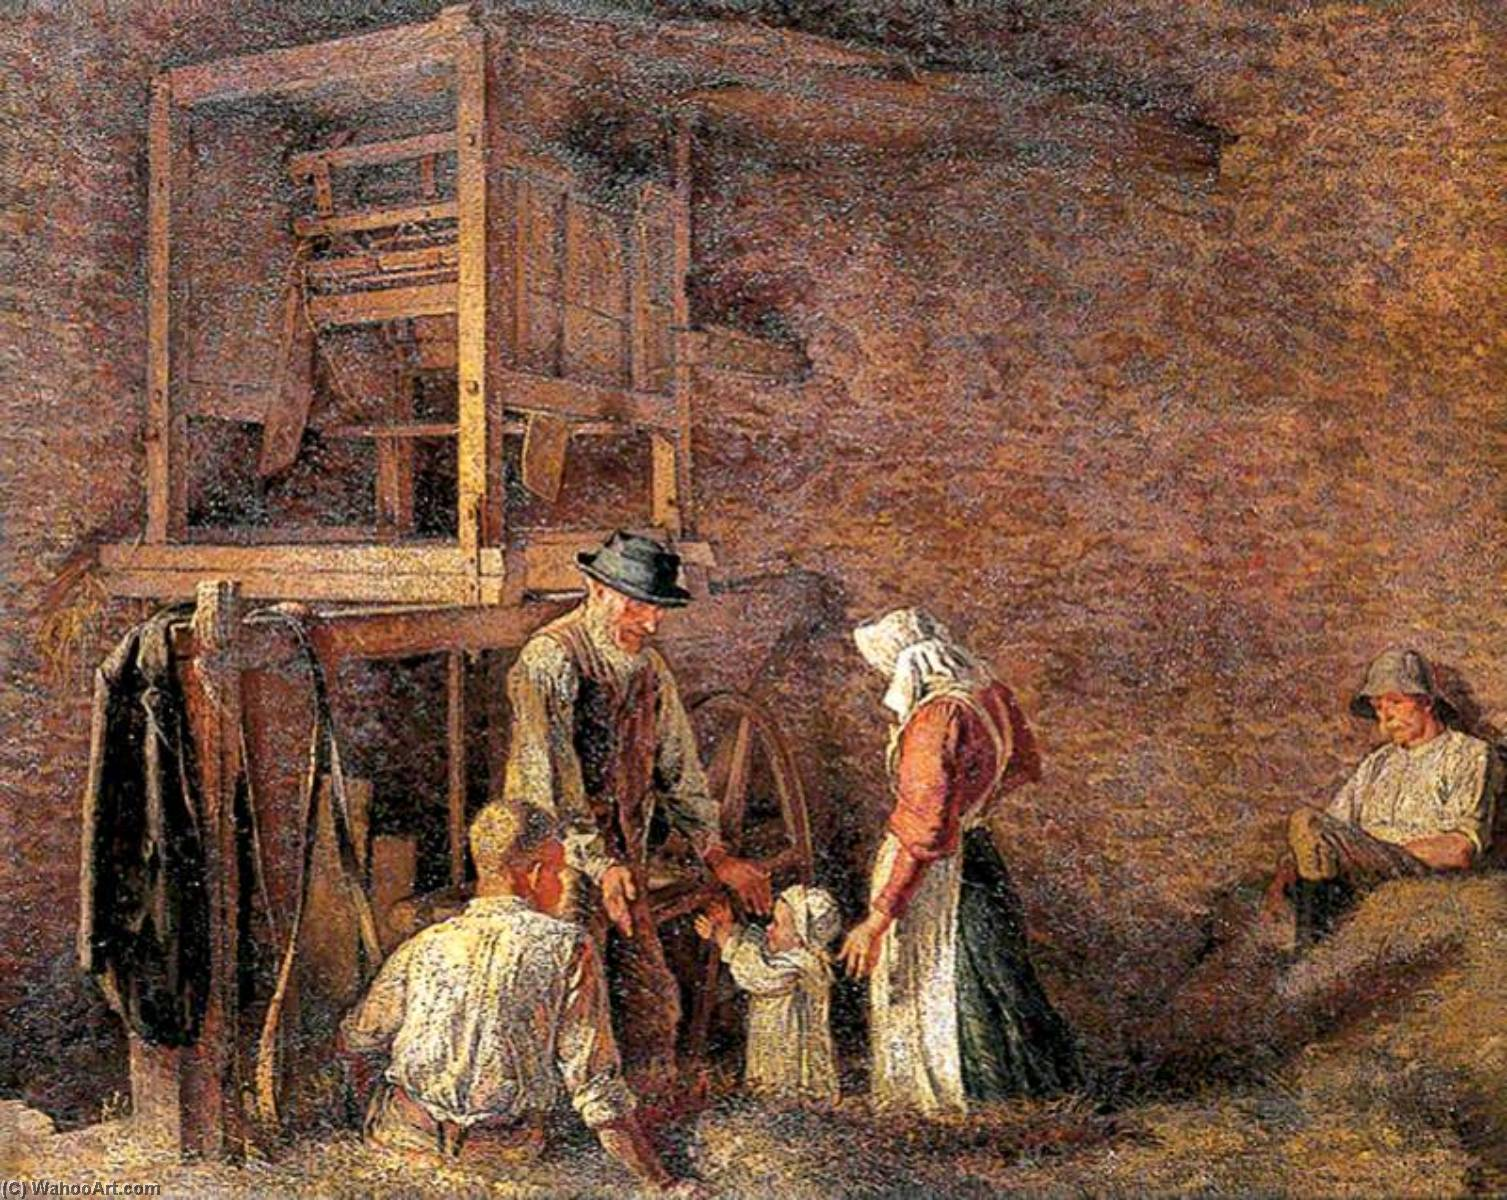 The Interior of a Barn, with Two Labourers Resting and an Old Man about to Embrace a Child Accompanied by a Woman, 1909 by Maxwell Gordon Lightfoot (1886-1911) | Famous Paintings Reproductions | WahooArt.com